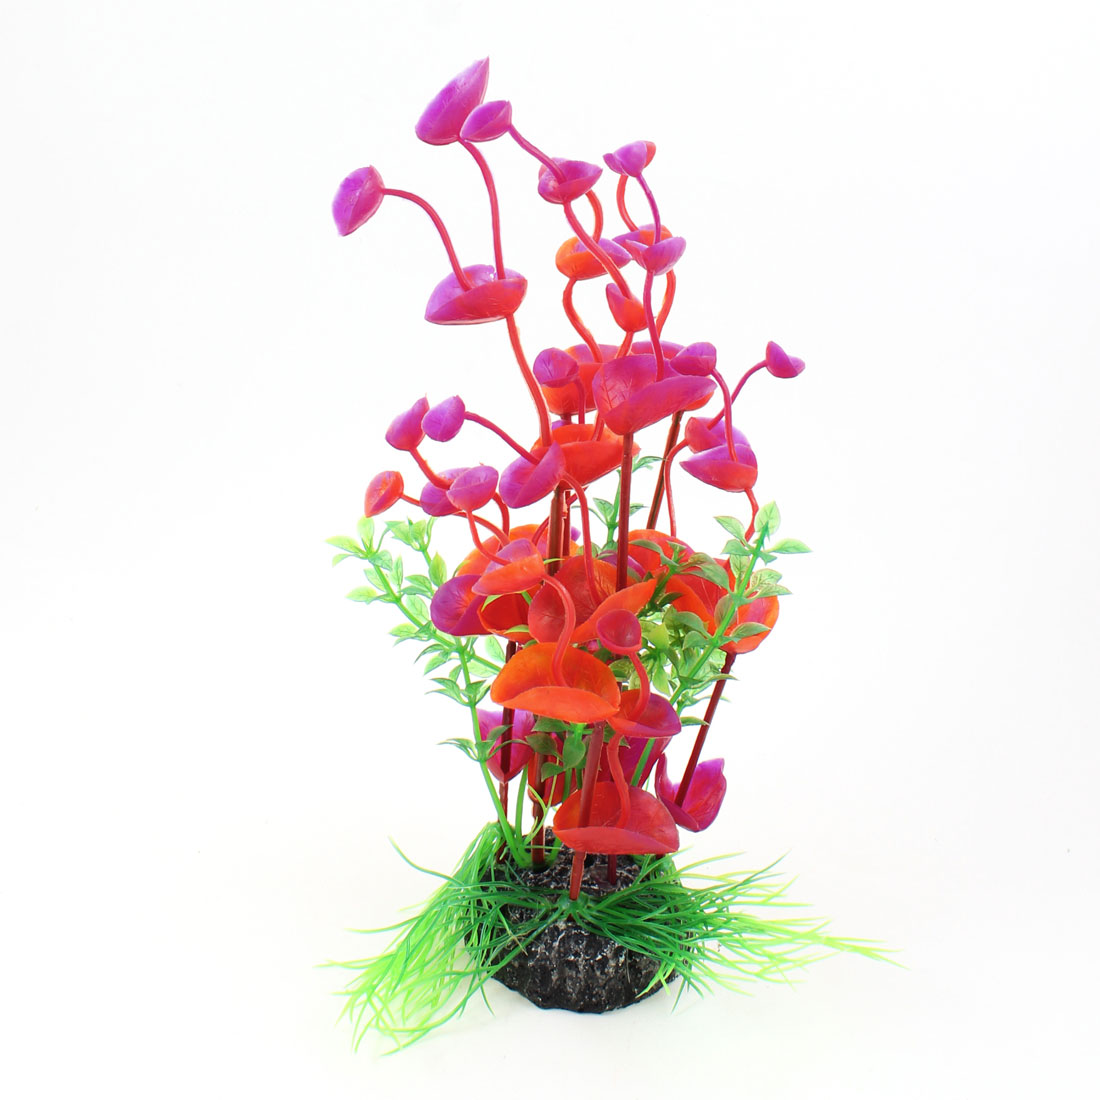 "Round Ceremic Base Red Fuchsia Aquatic Flower Plant 7.9"" Height for Aquarium"